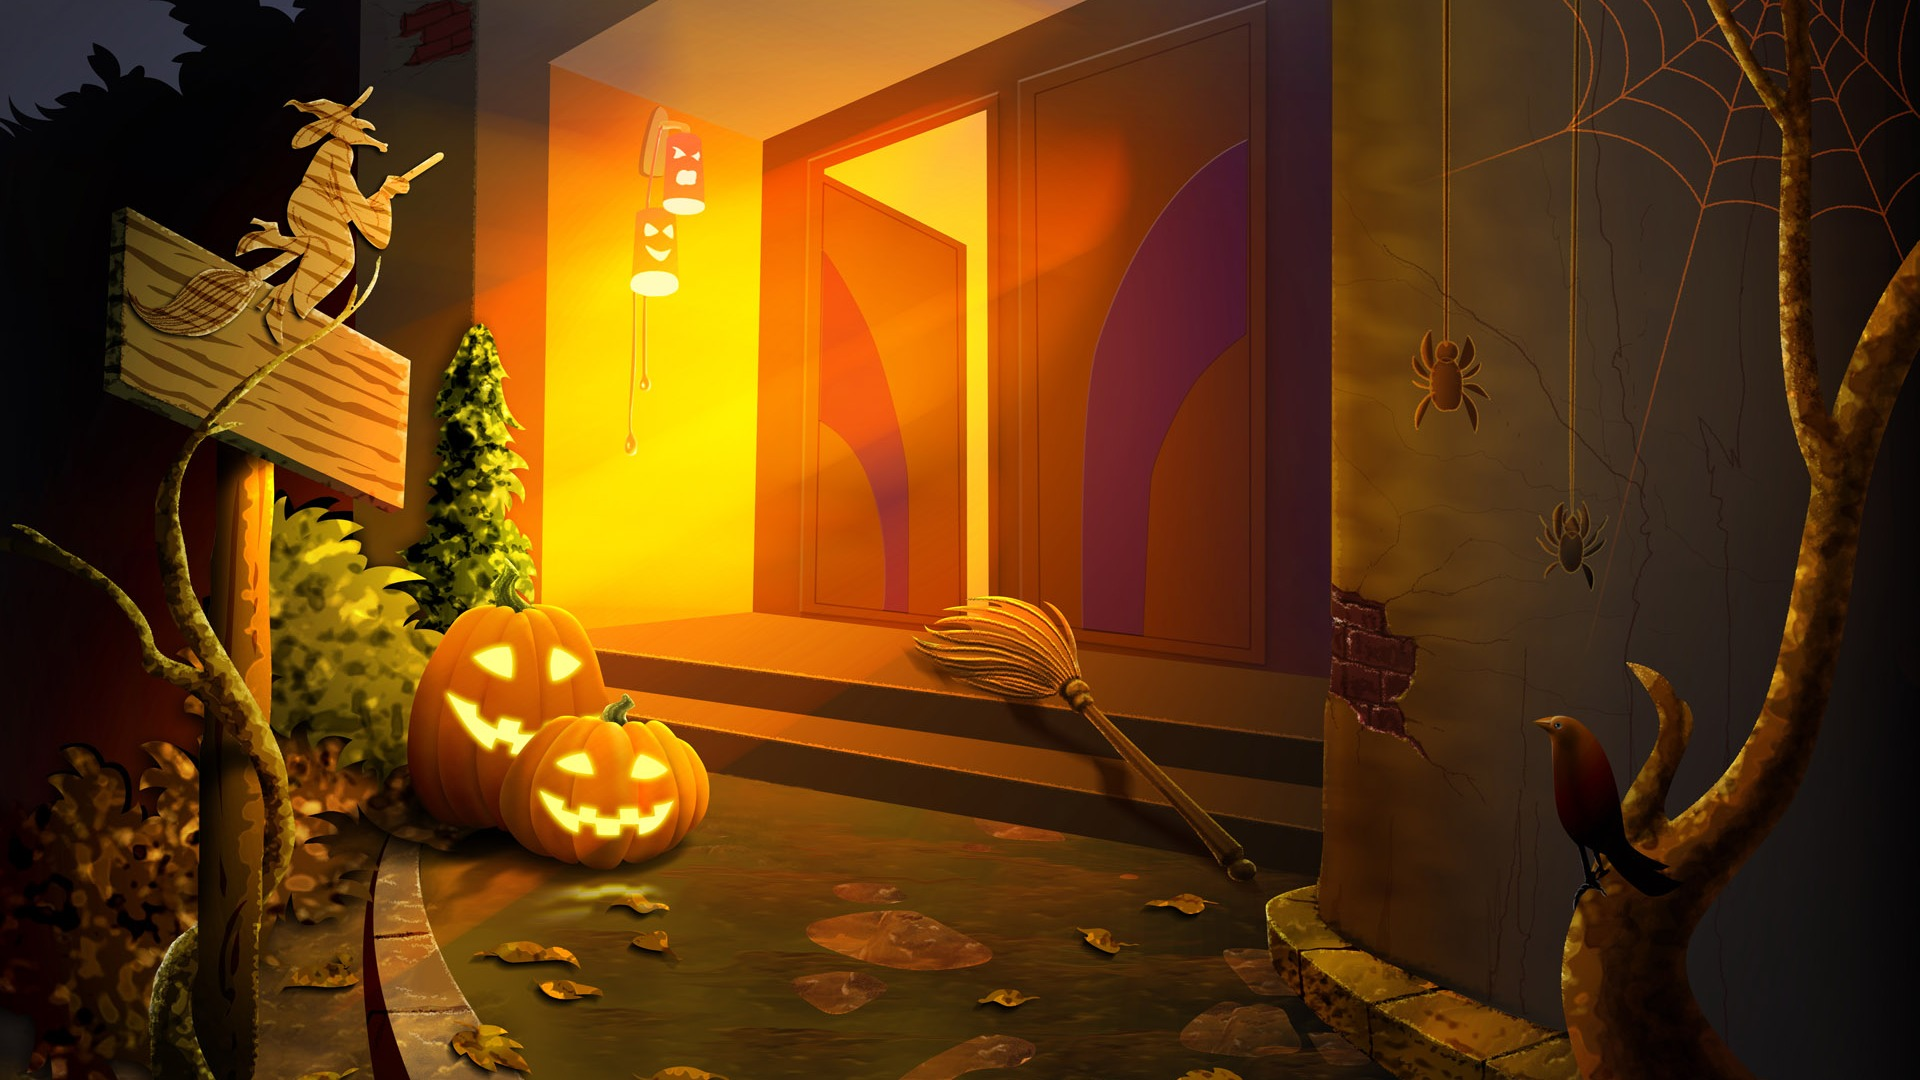 Fonds d 39 cran th me de l 39 halloween 4 8 1920x1080 fond for Theme d ecran